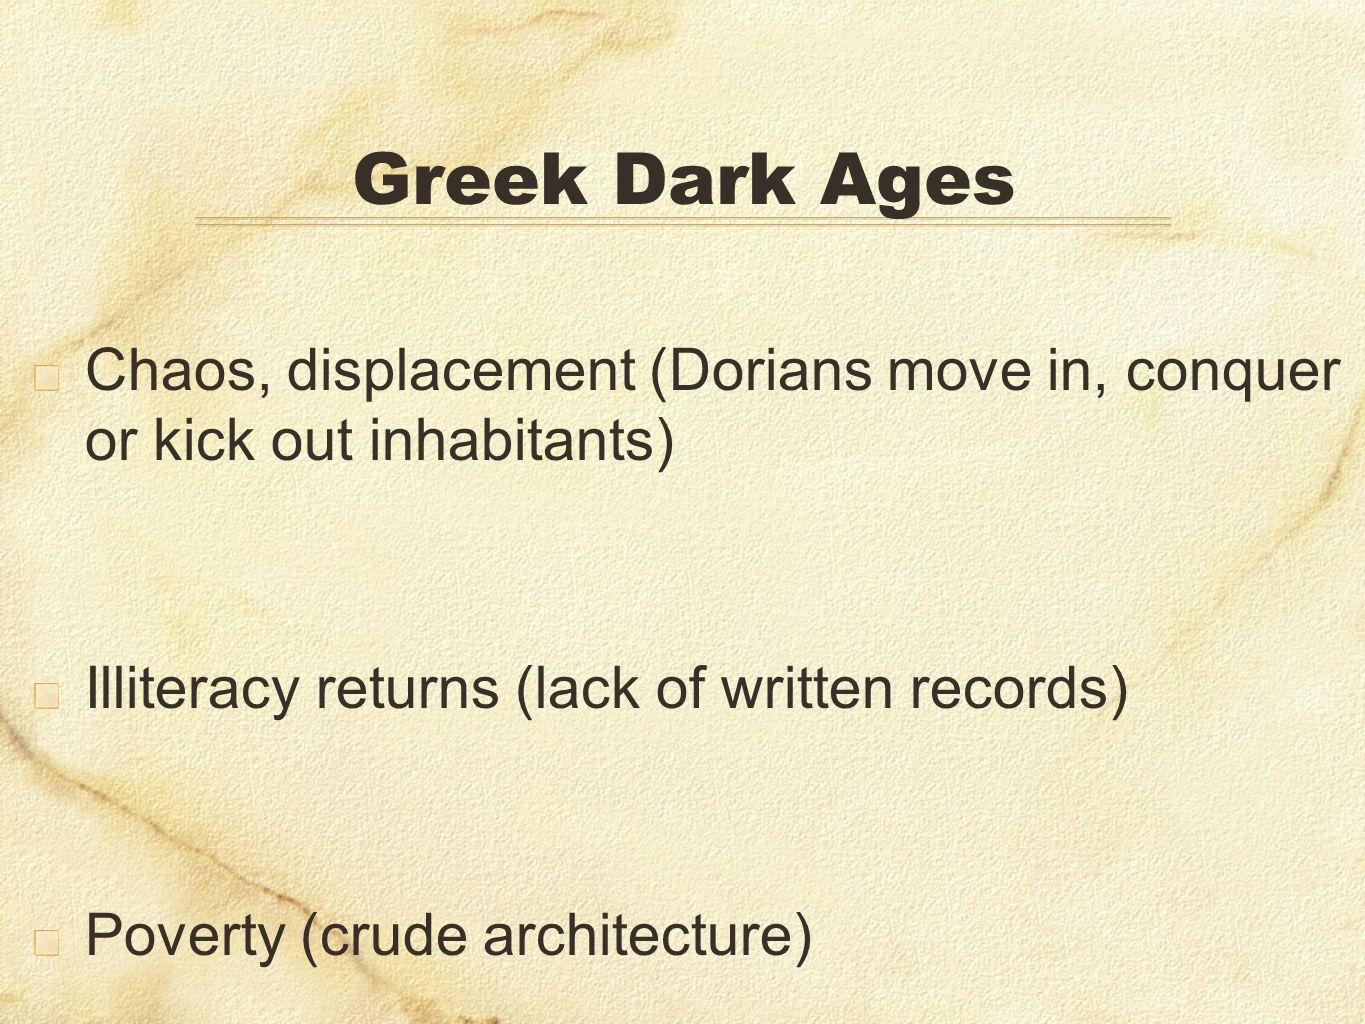 Greek Dark Ages Chaos, displacement (Dorians move in, conquer or kick out inhabitants) Illiteracy returns (lack of written records)